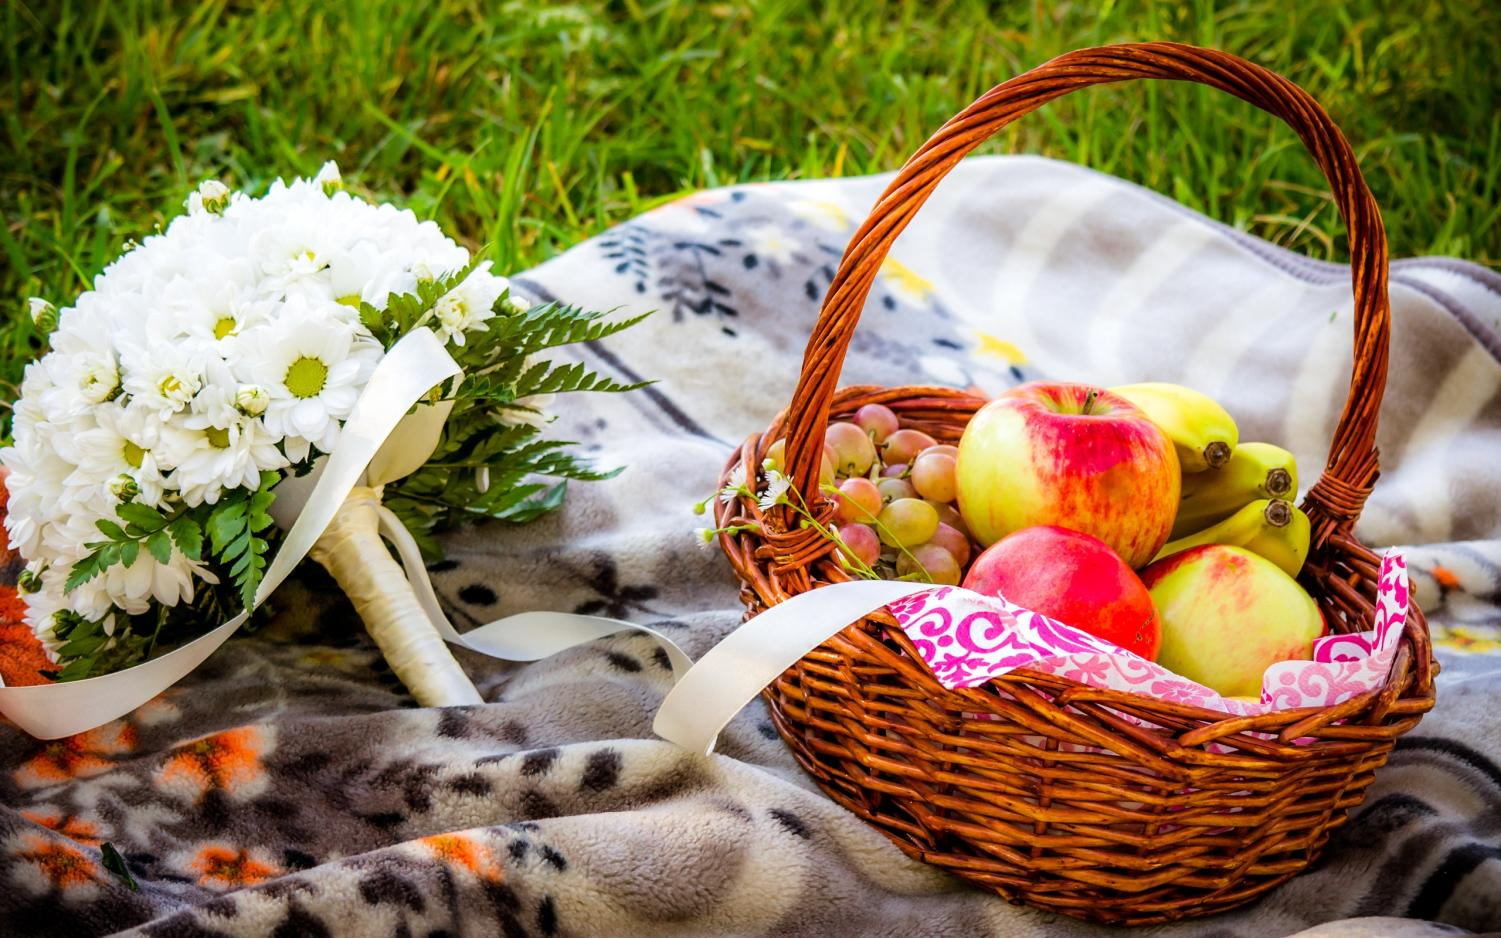 Photo of a picnic basket, courtesy of www.wallsdesk.com